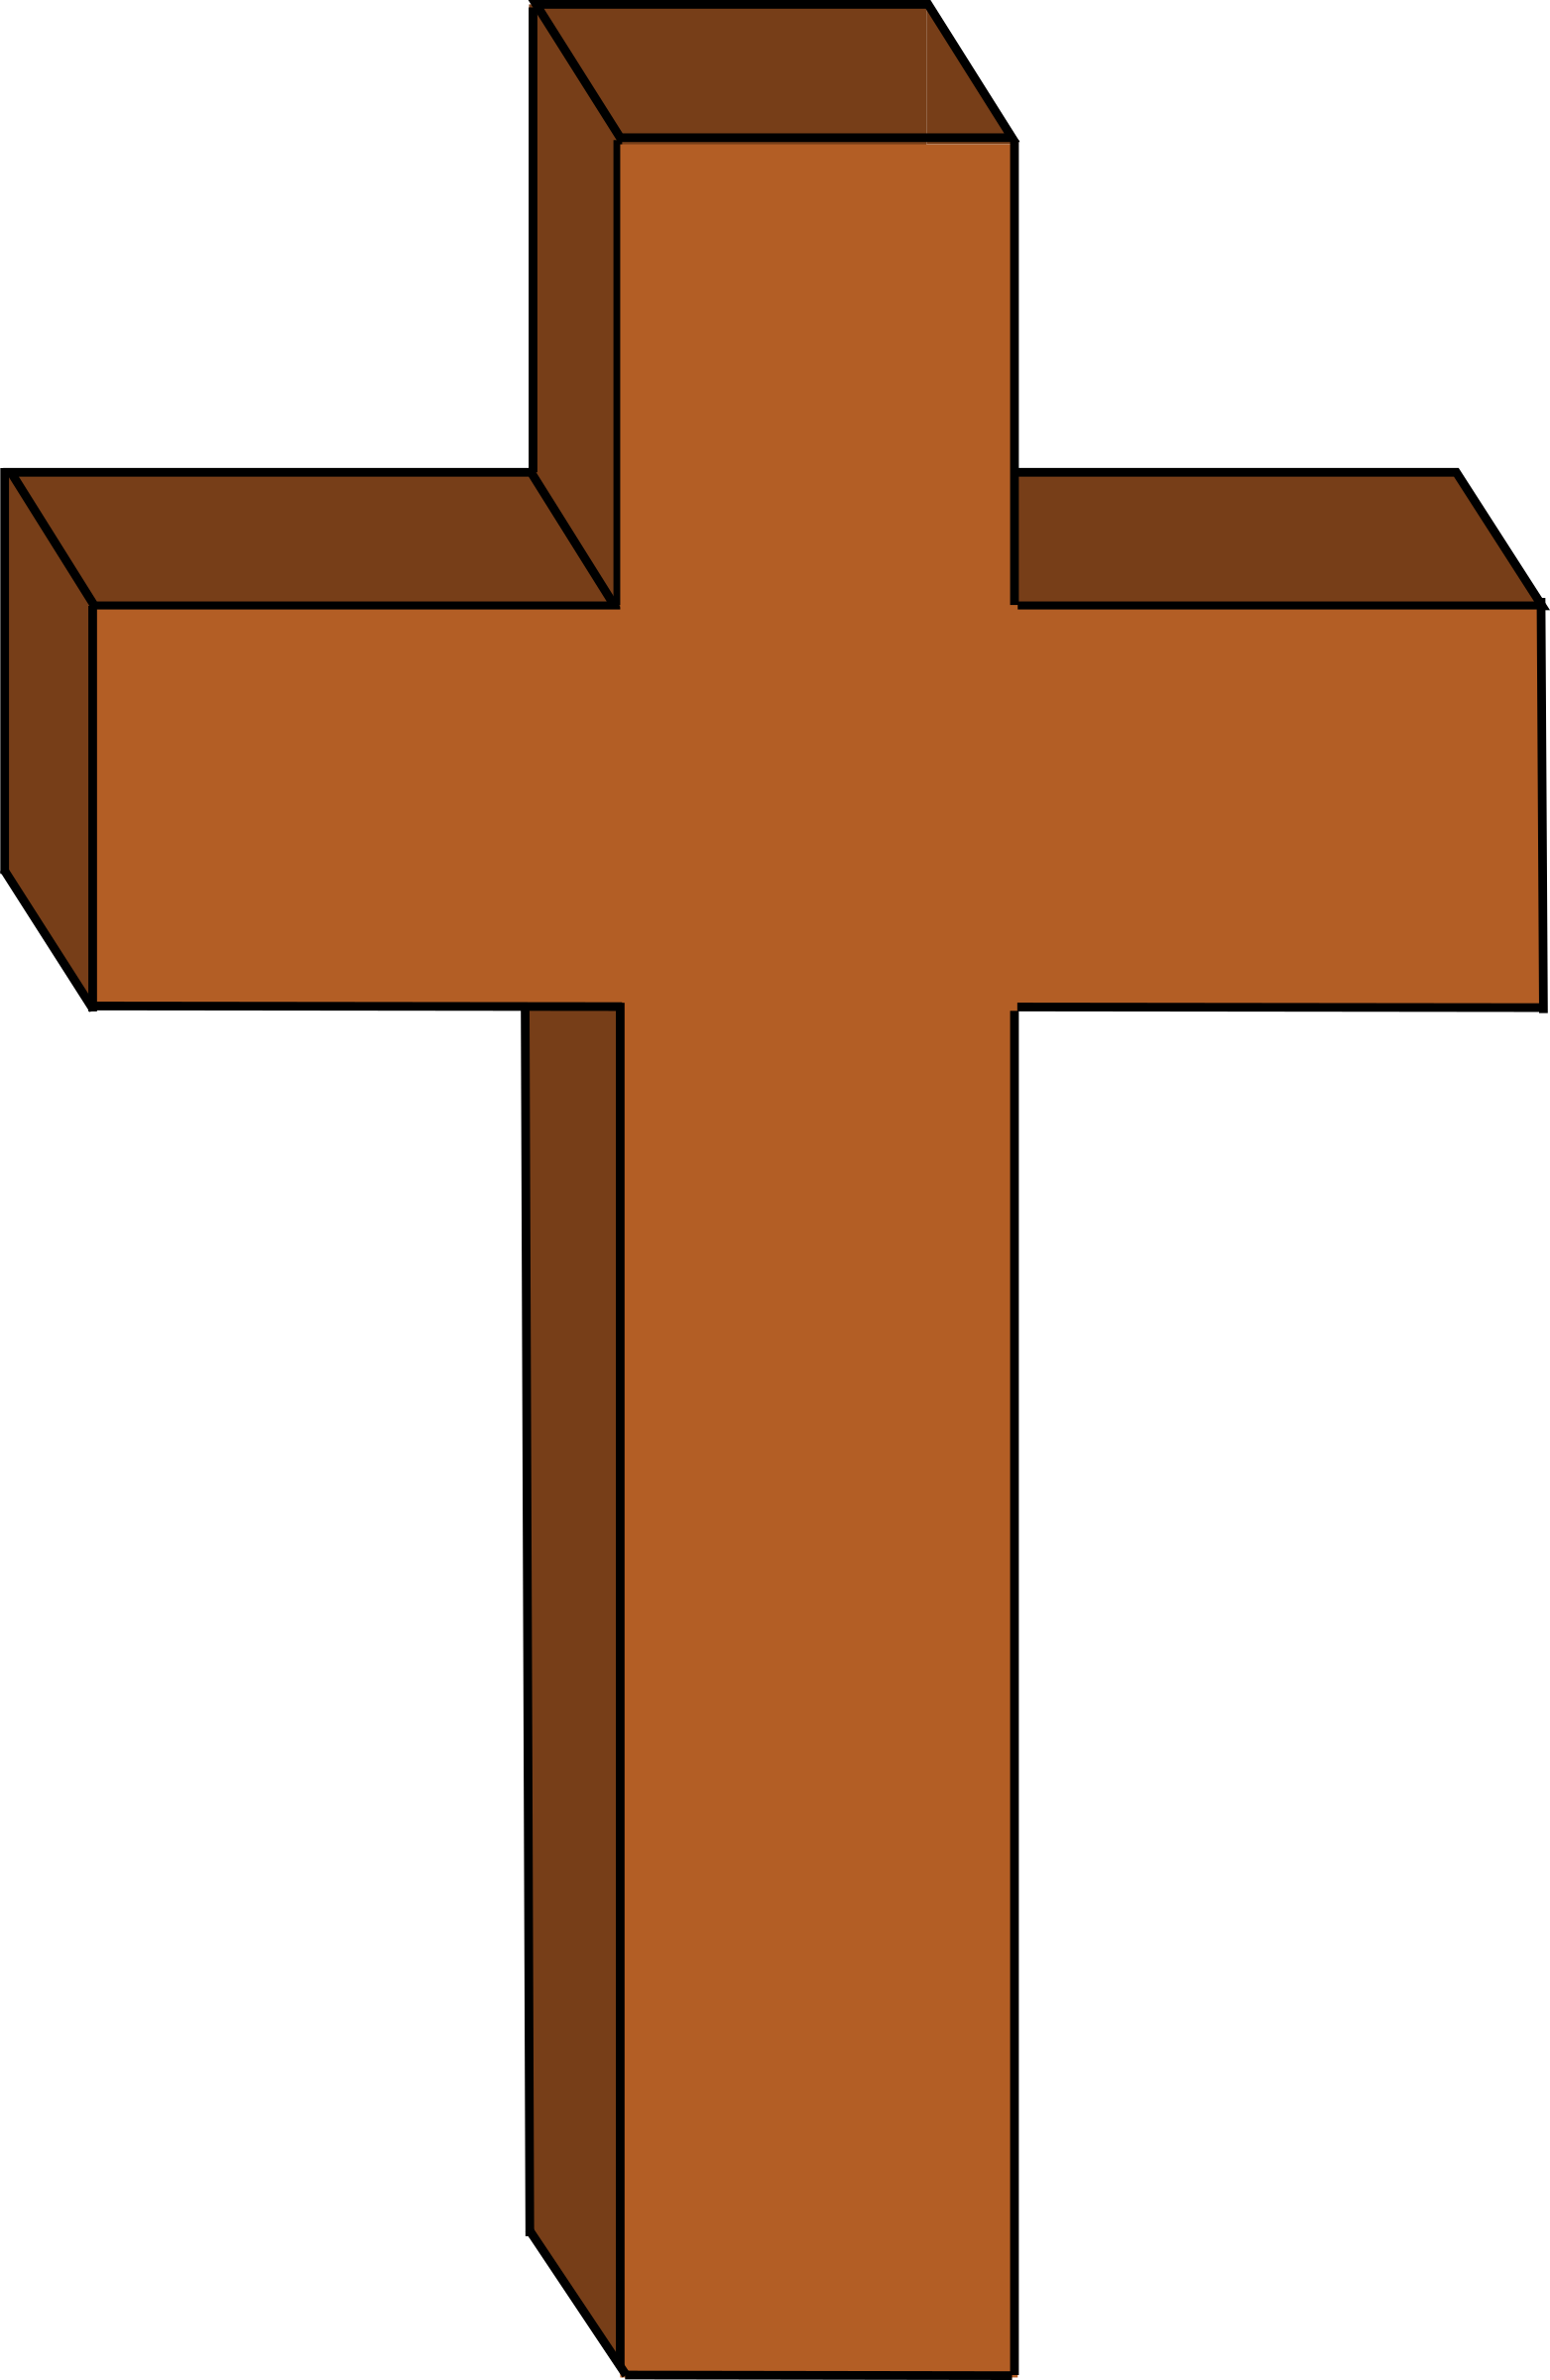 Christian Cross Png Image Purepng Free Transparent Cc0 Png Image